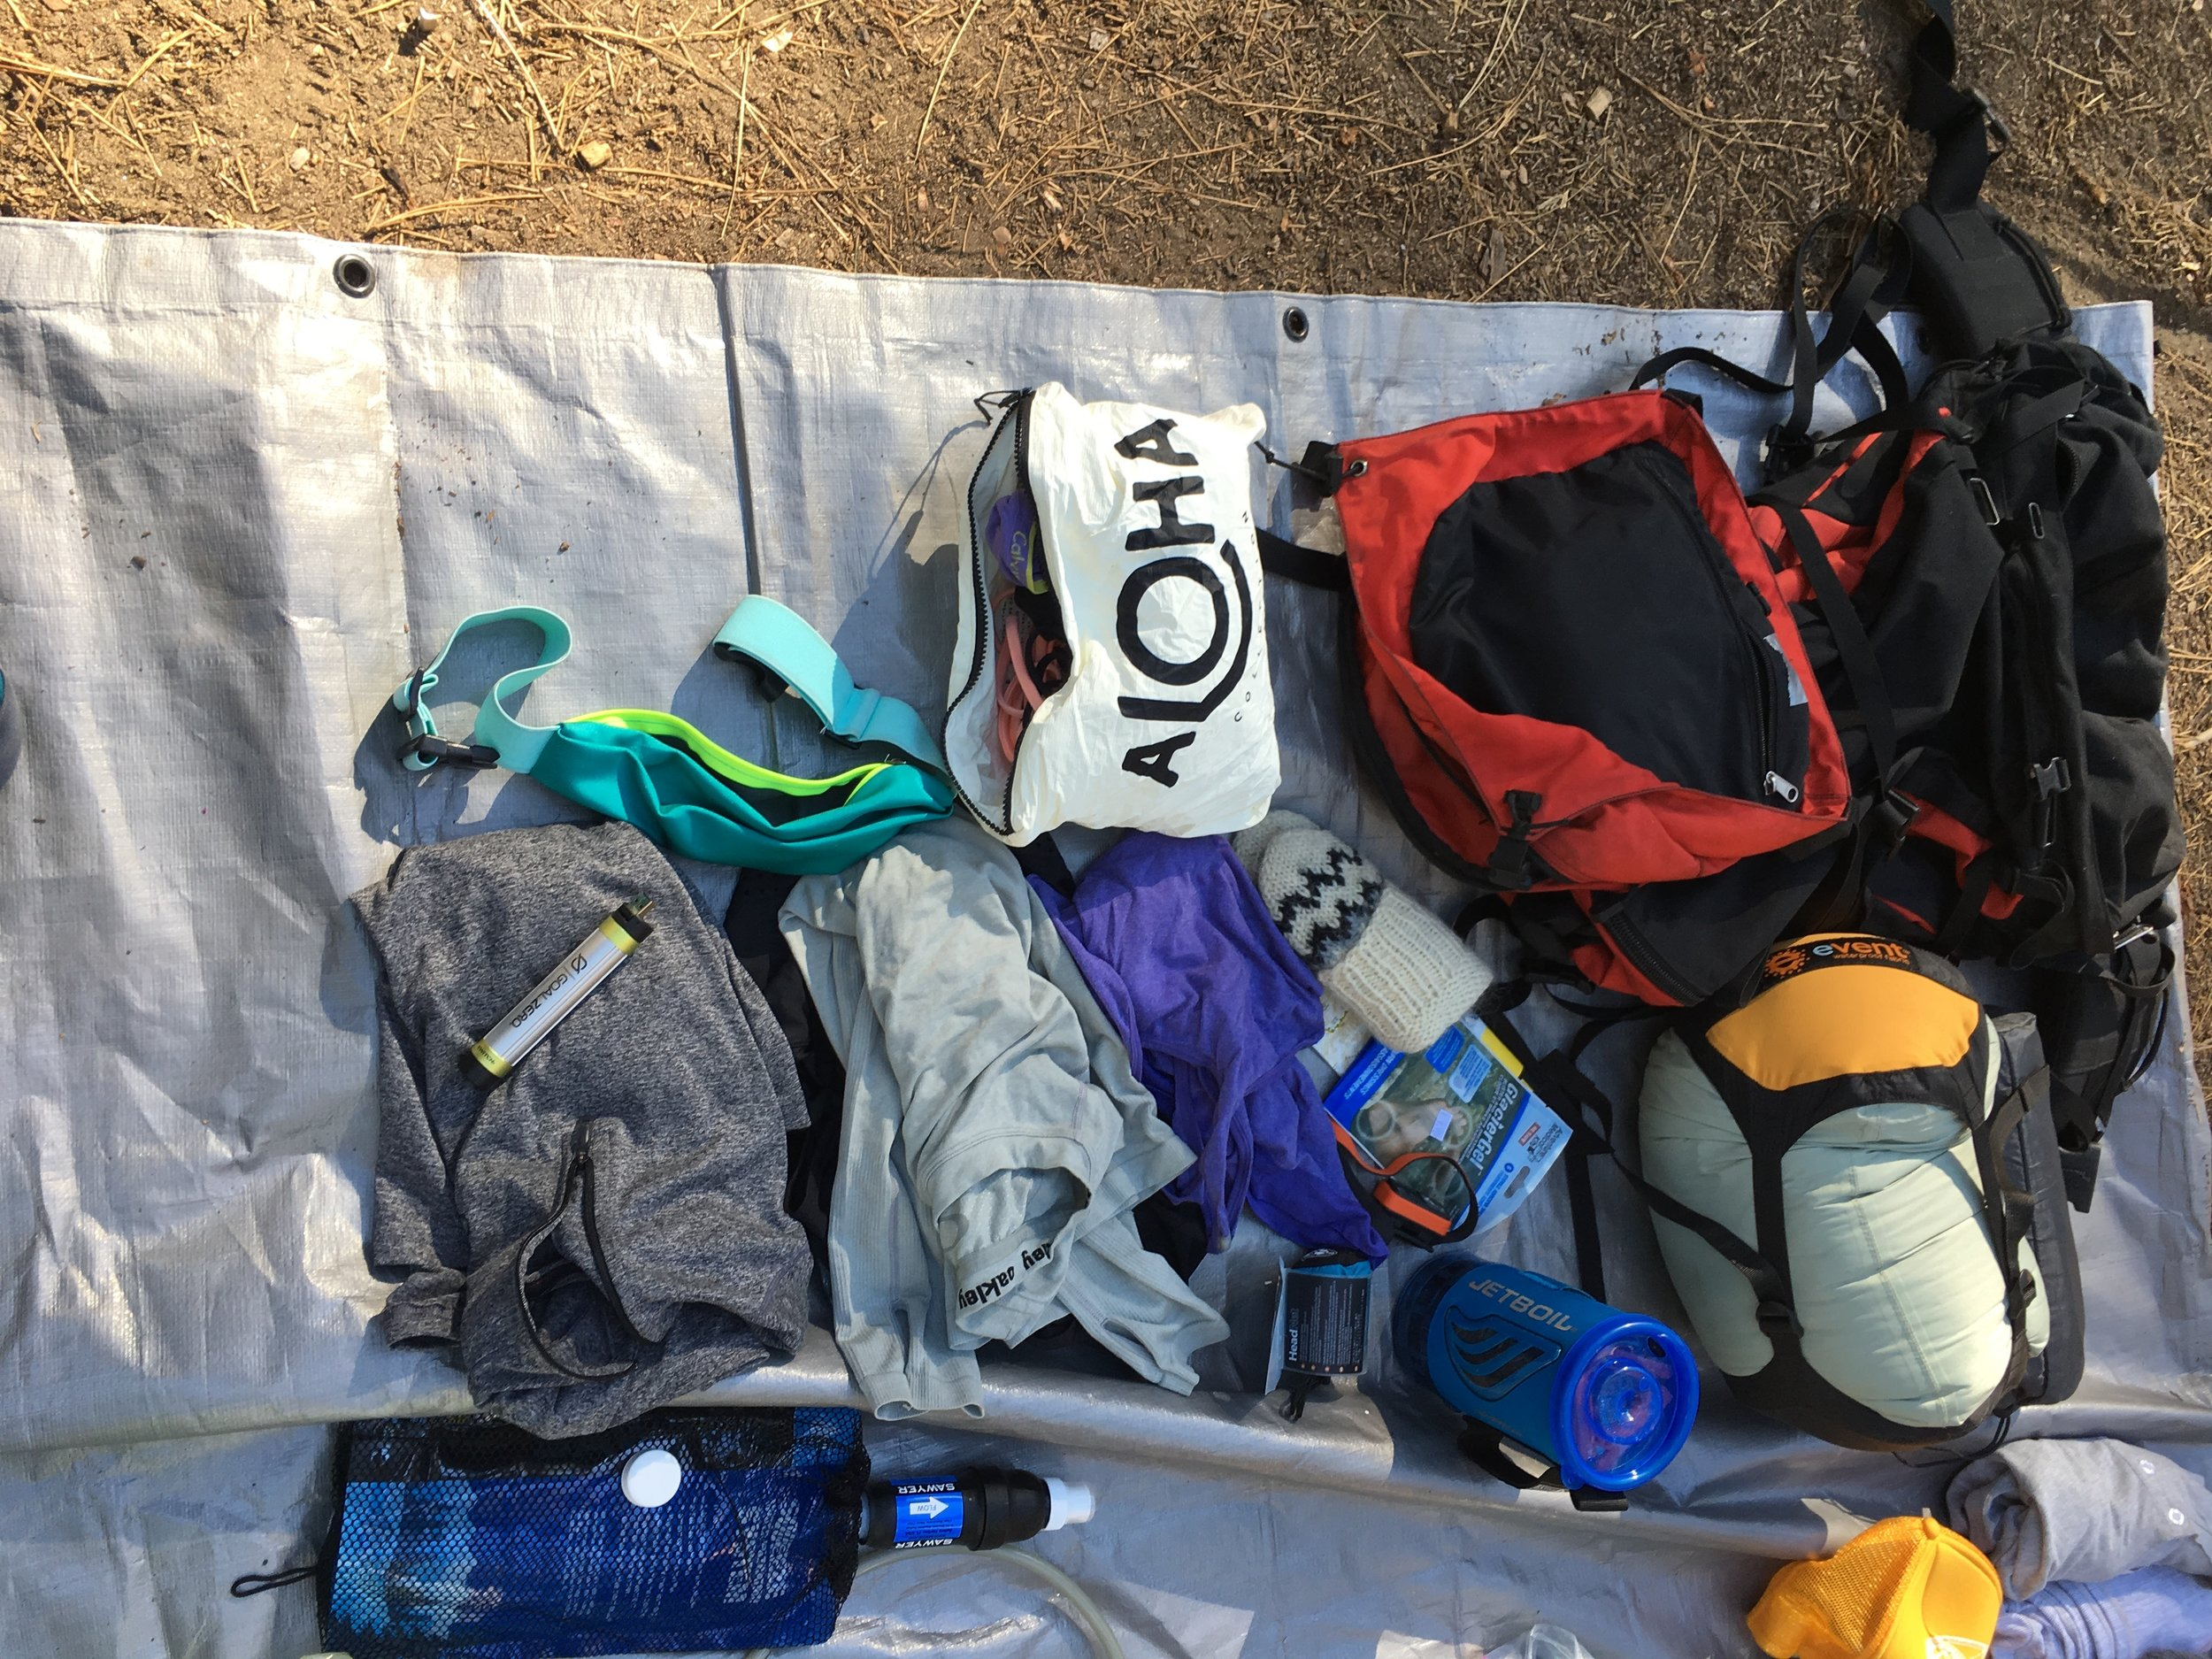 All the essentials for an adventure into the back country. We could have been out for 2 nights with what we brought.